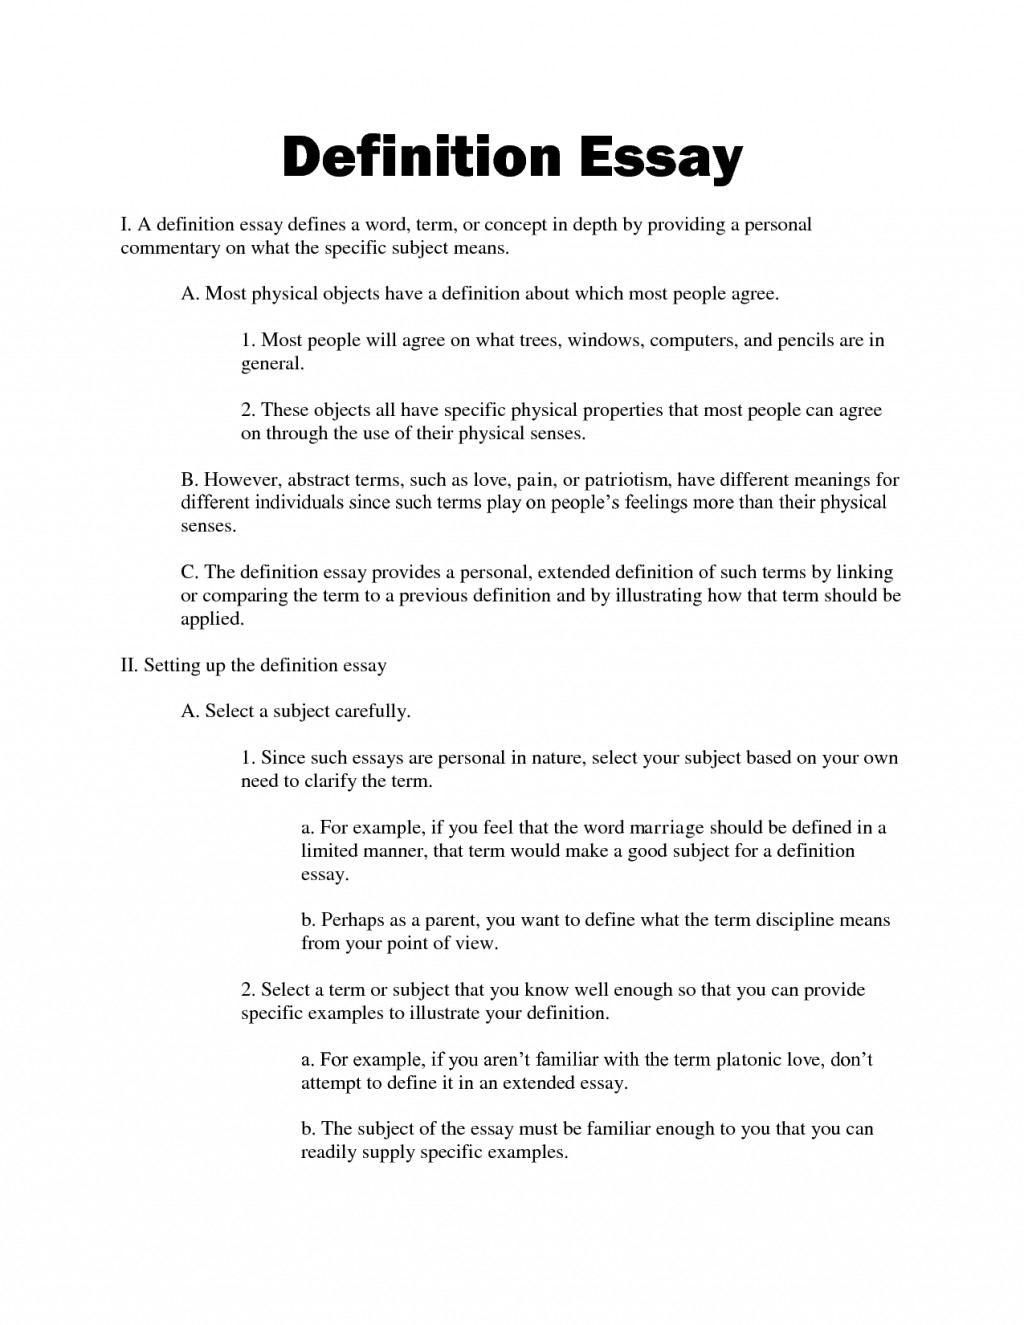 001 Definition Essays Gj60o8orim Essay Marvelous Topics On Beauty Samples Large